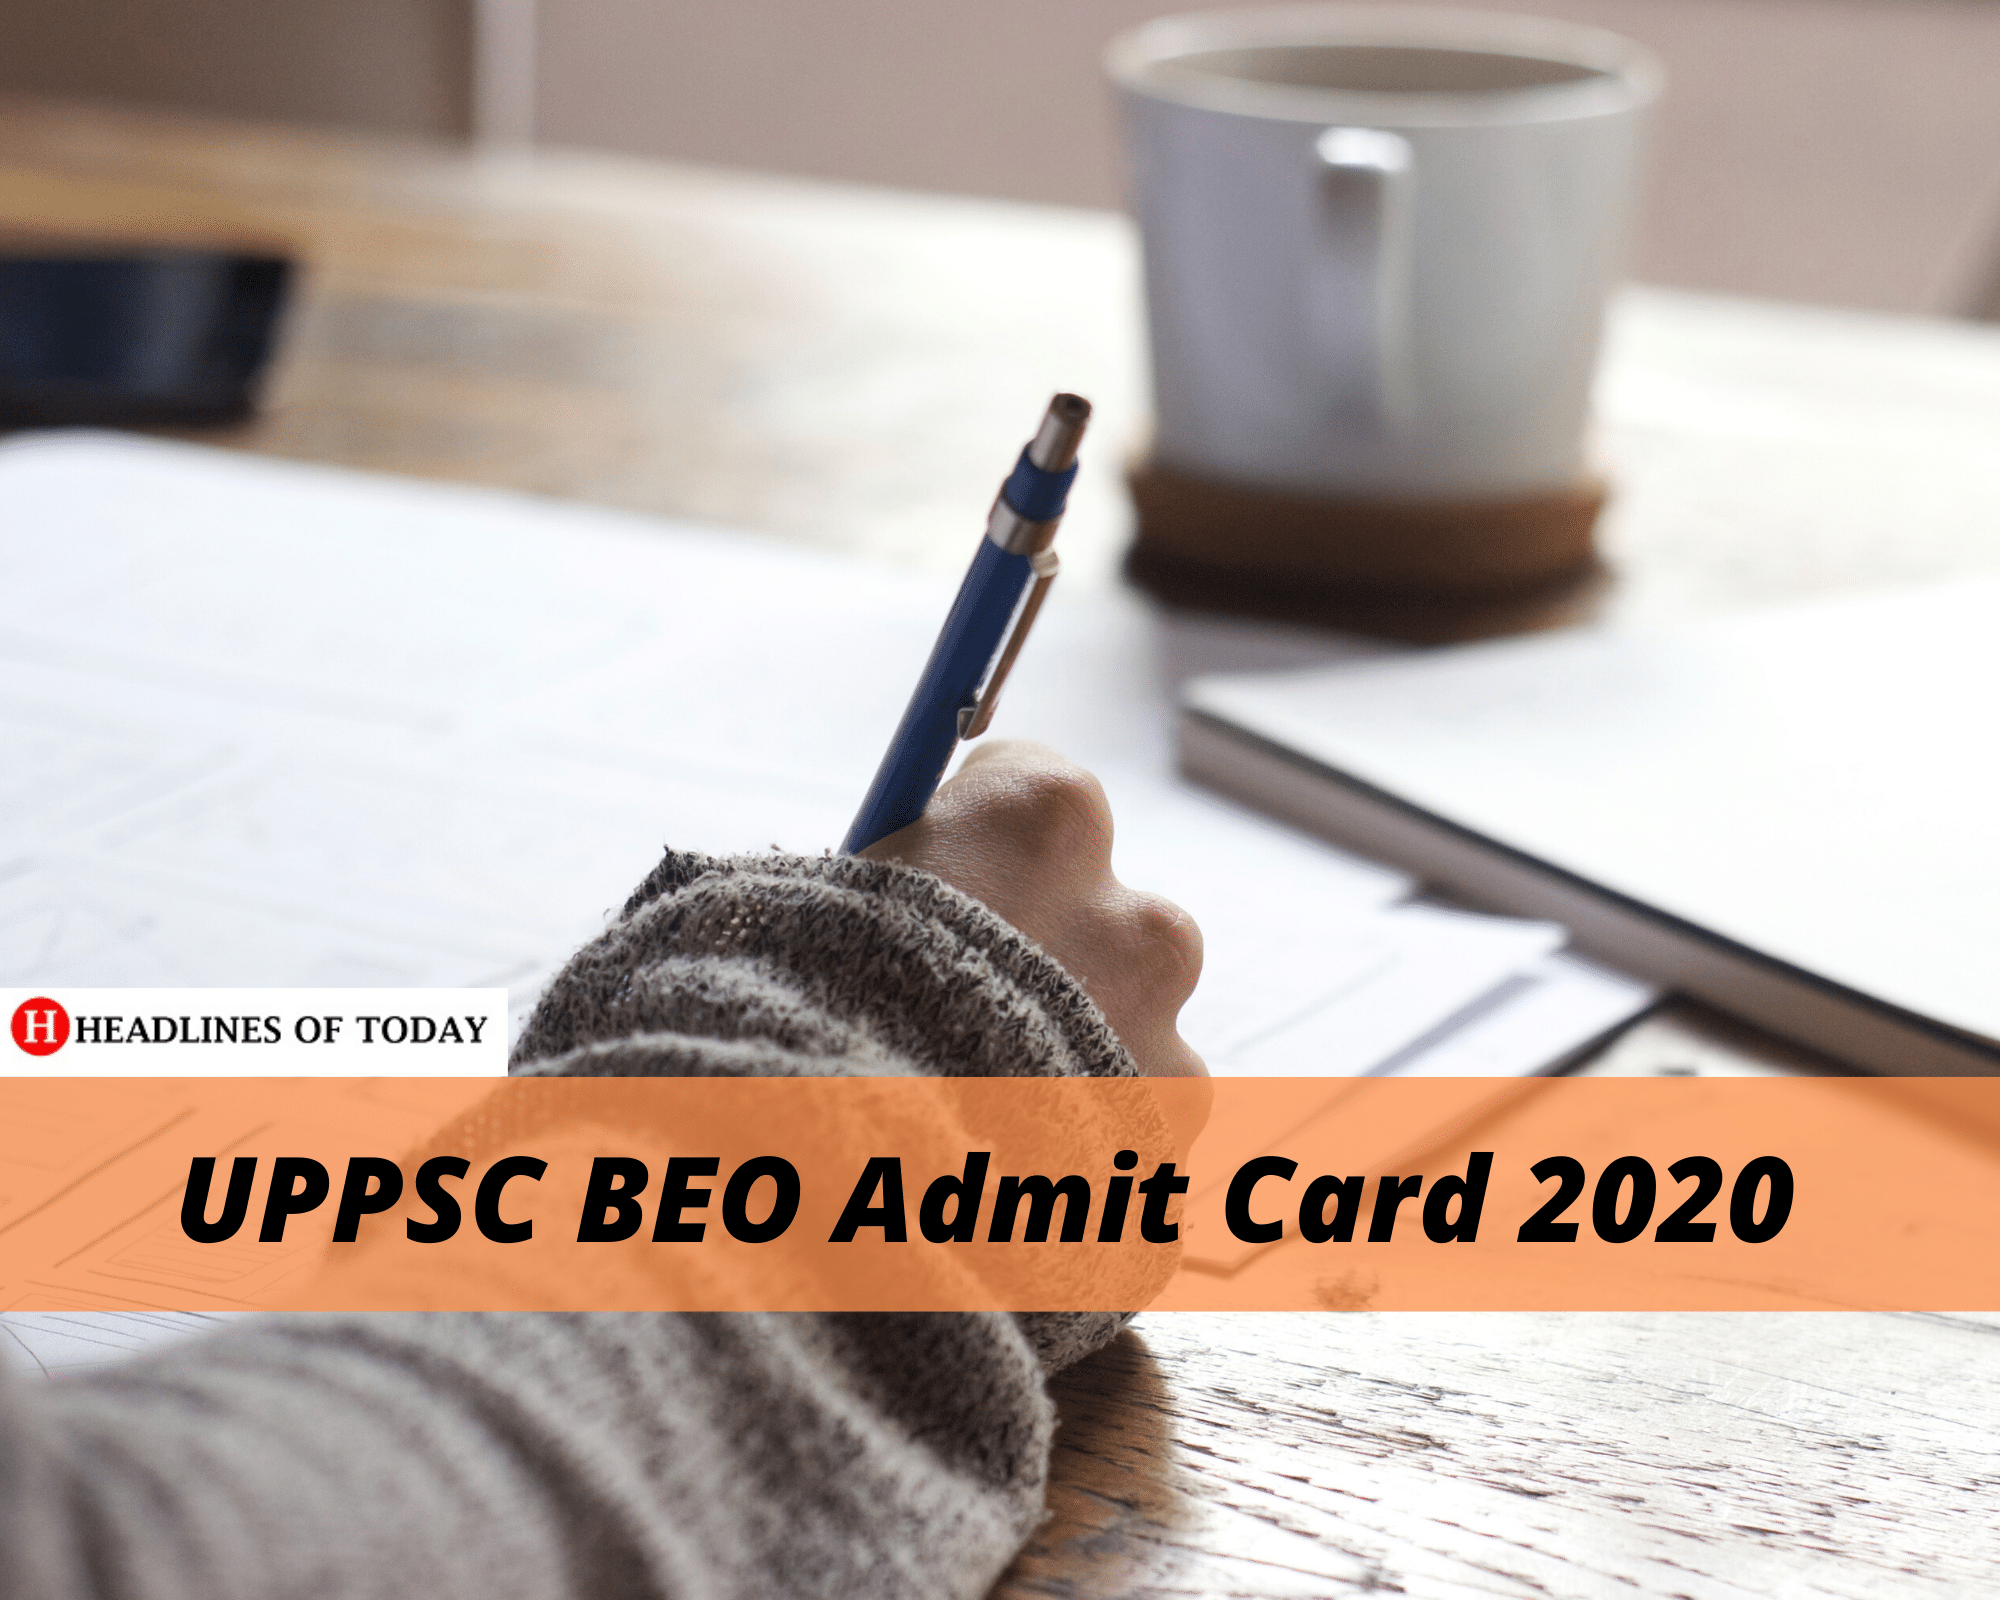 UPPSC BEO Admit Card 2020